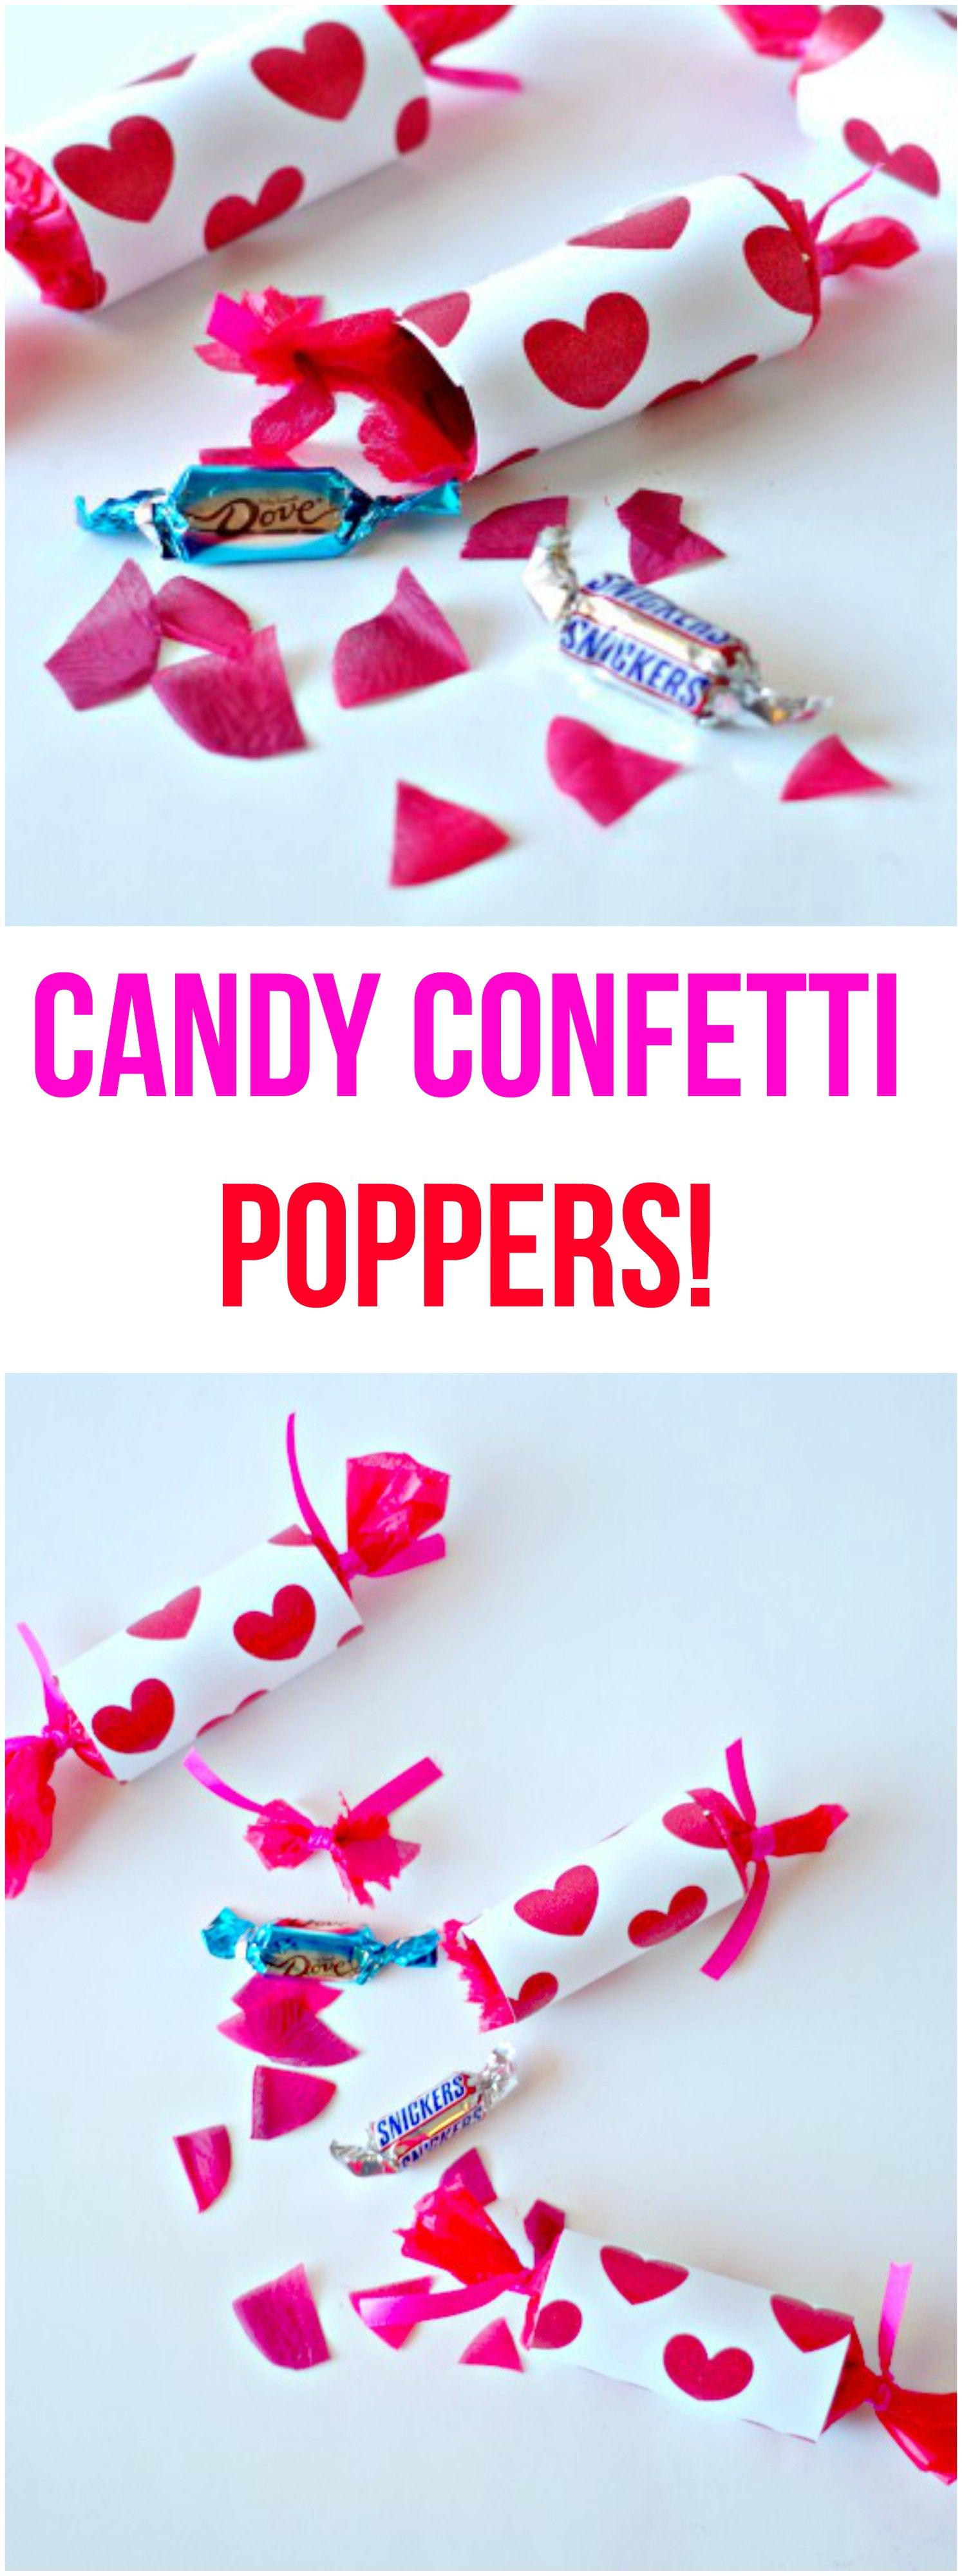 Candy Confetti Poppers